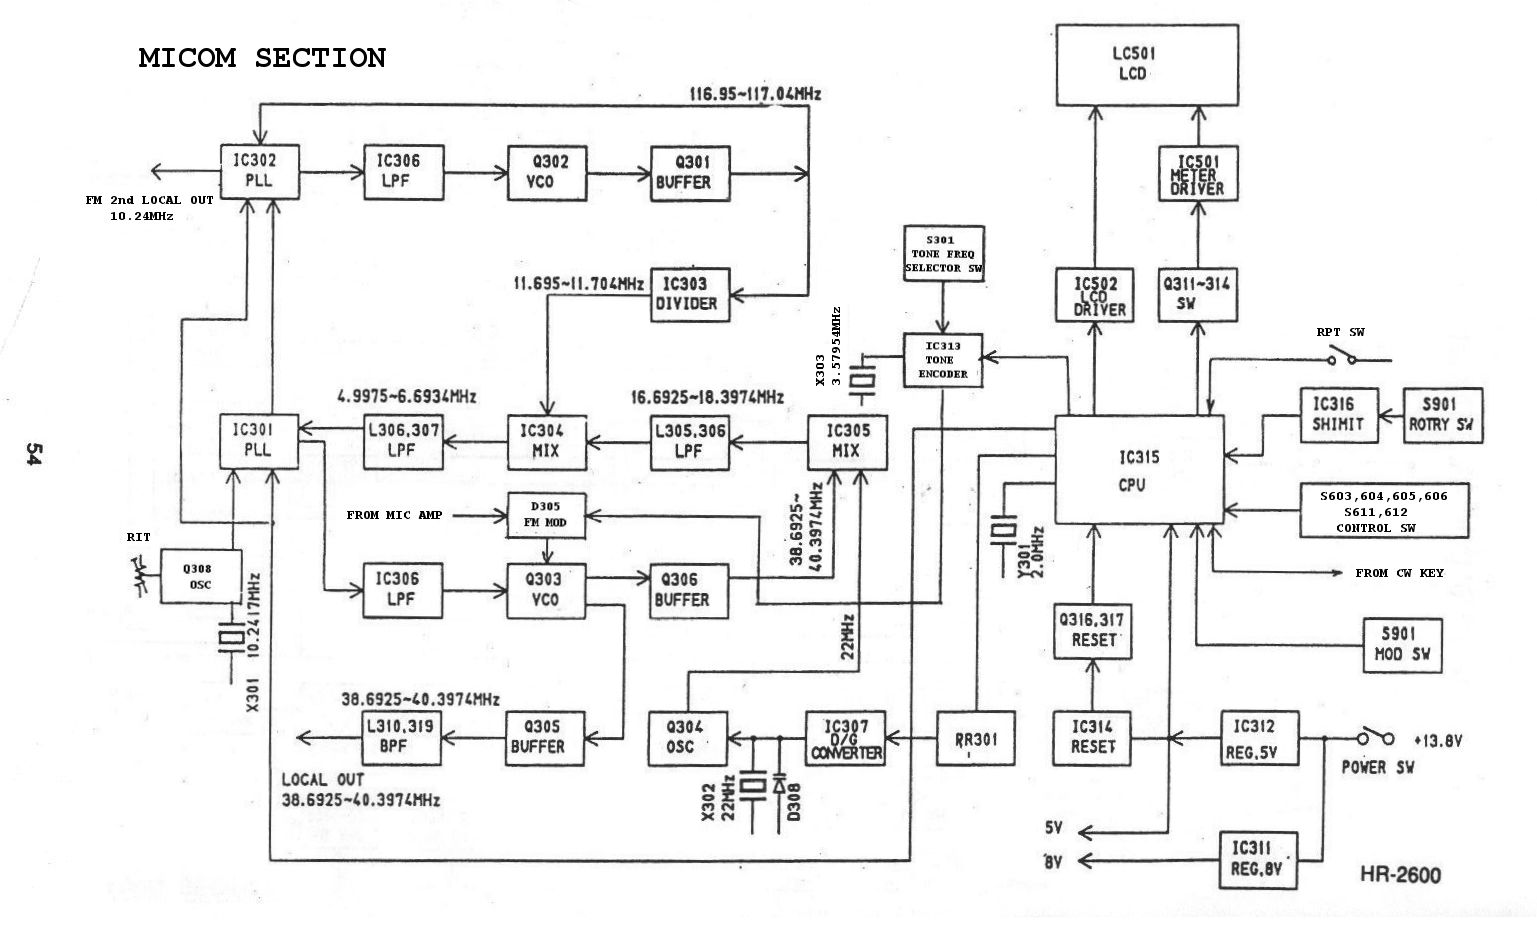 Rogerbirds radio modification information page hr2600 cpu board block diagram ccuart Images